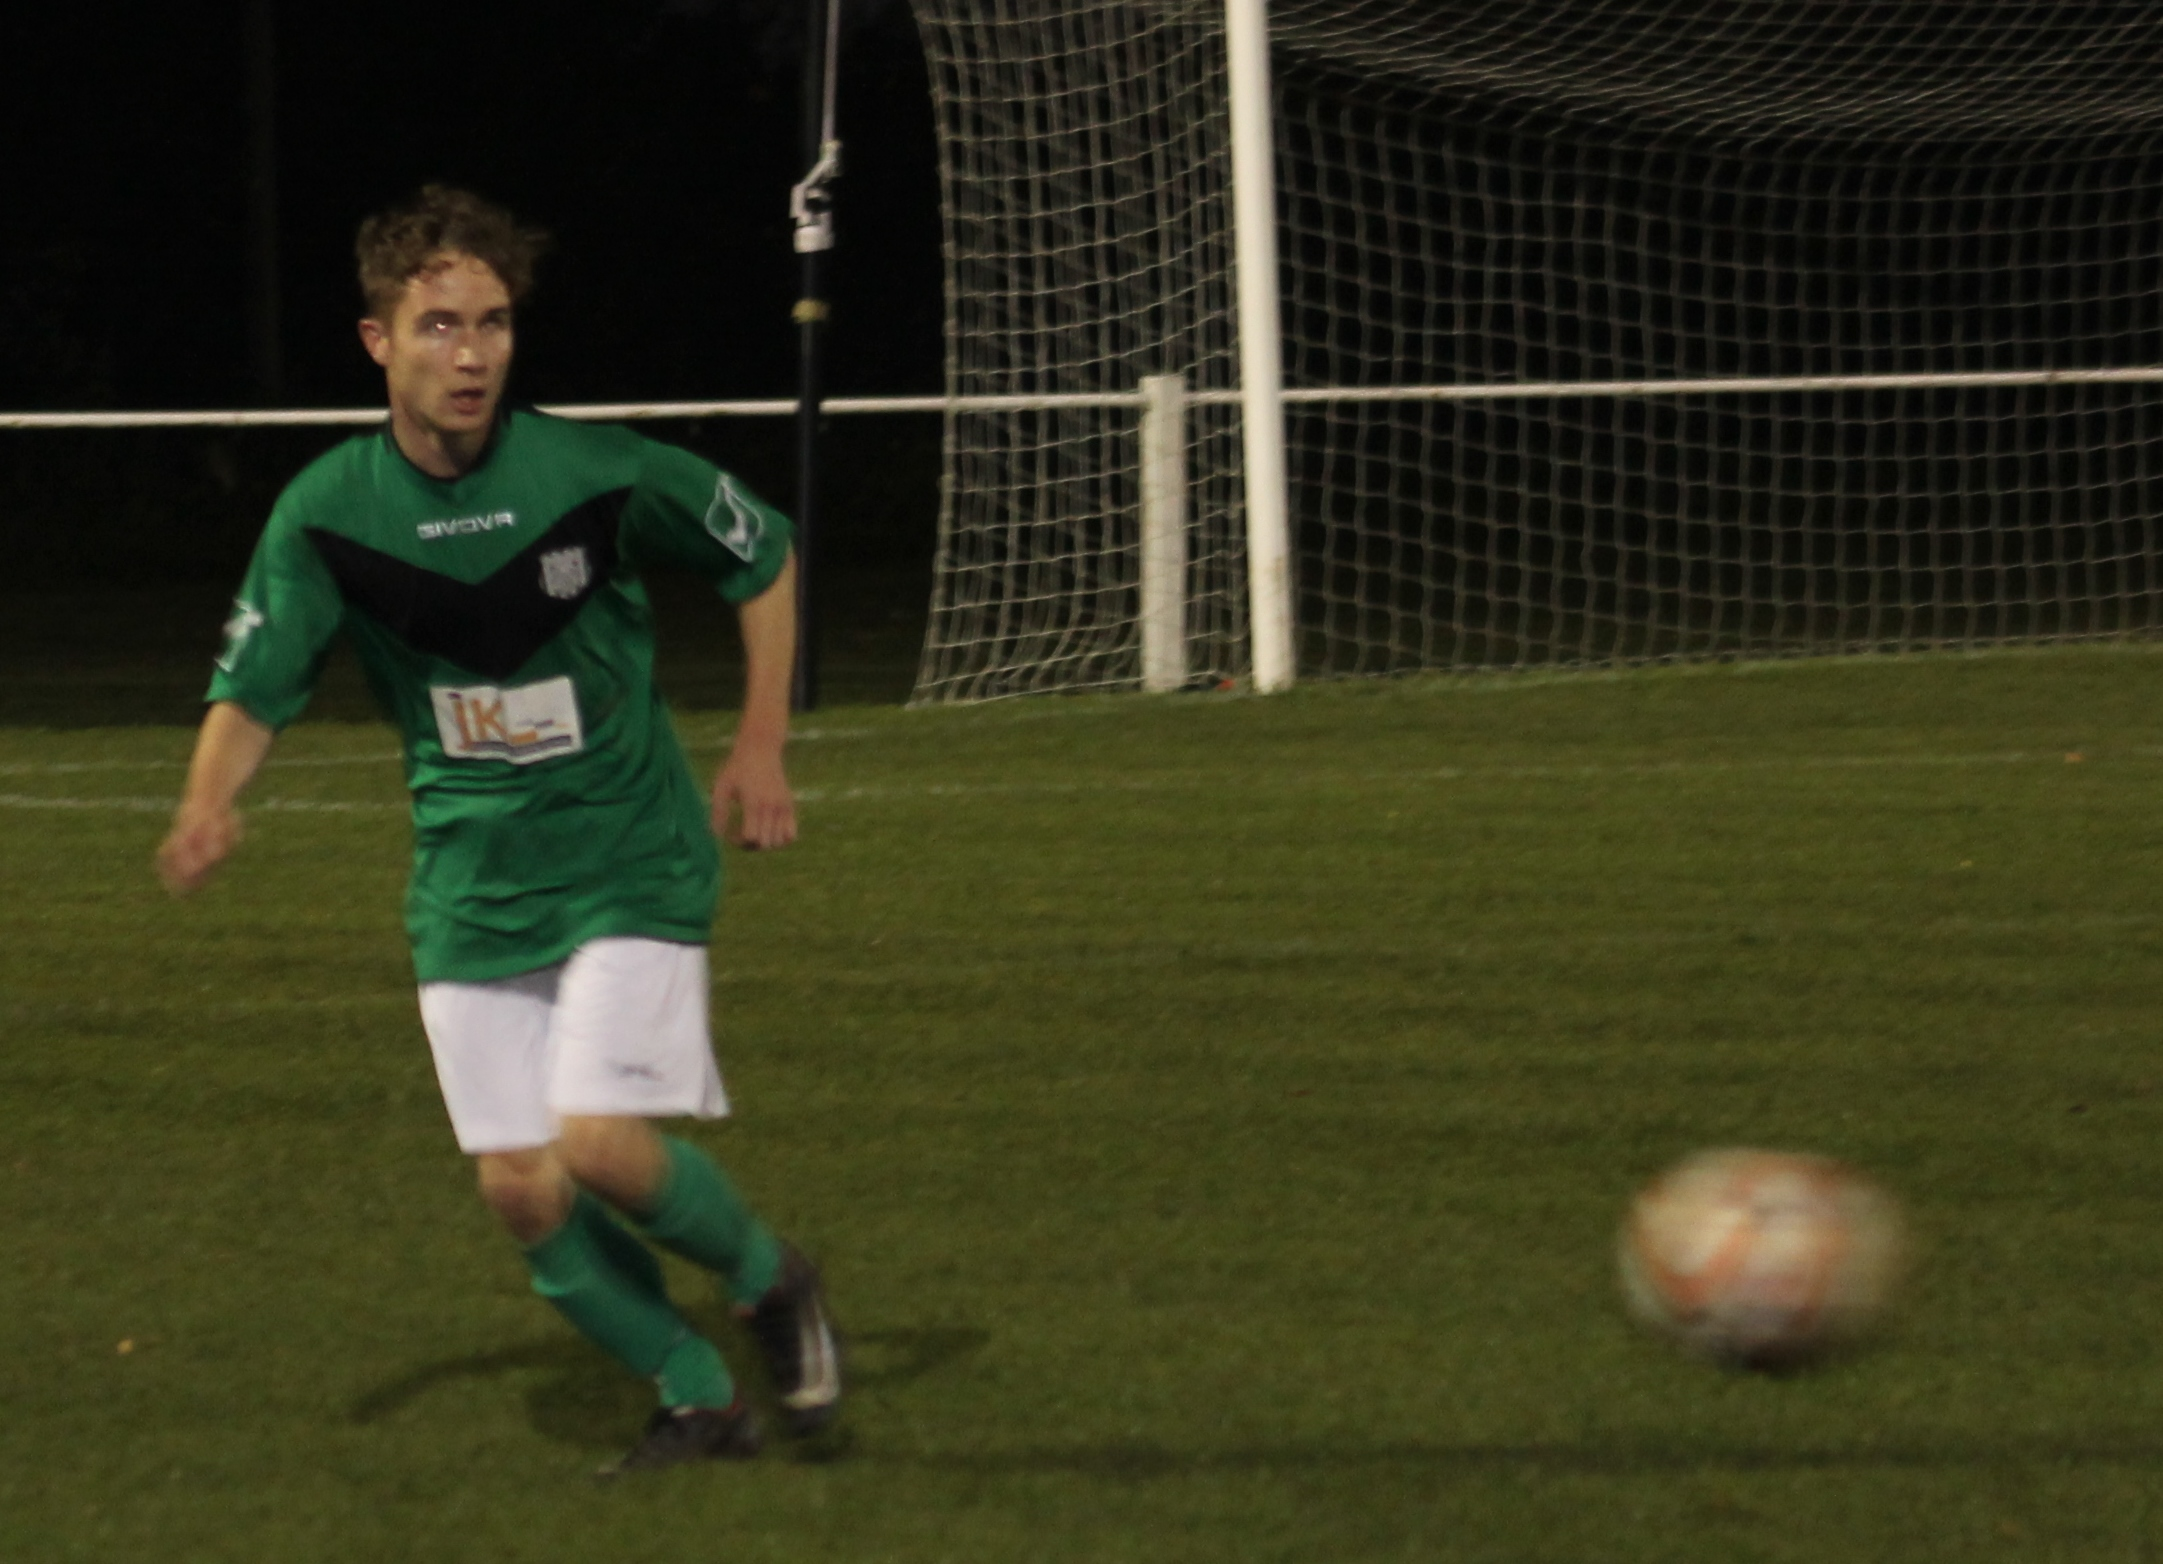 Charlie Dolling in action for Brigg Town.